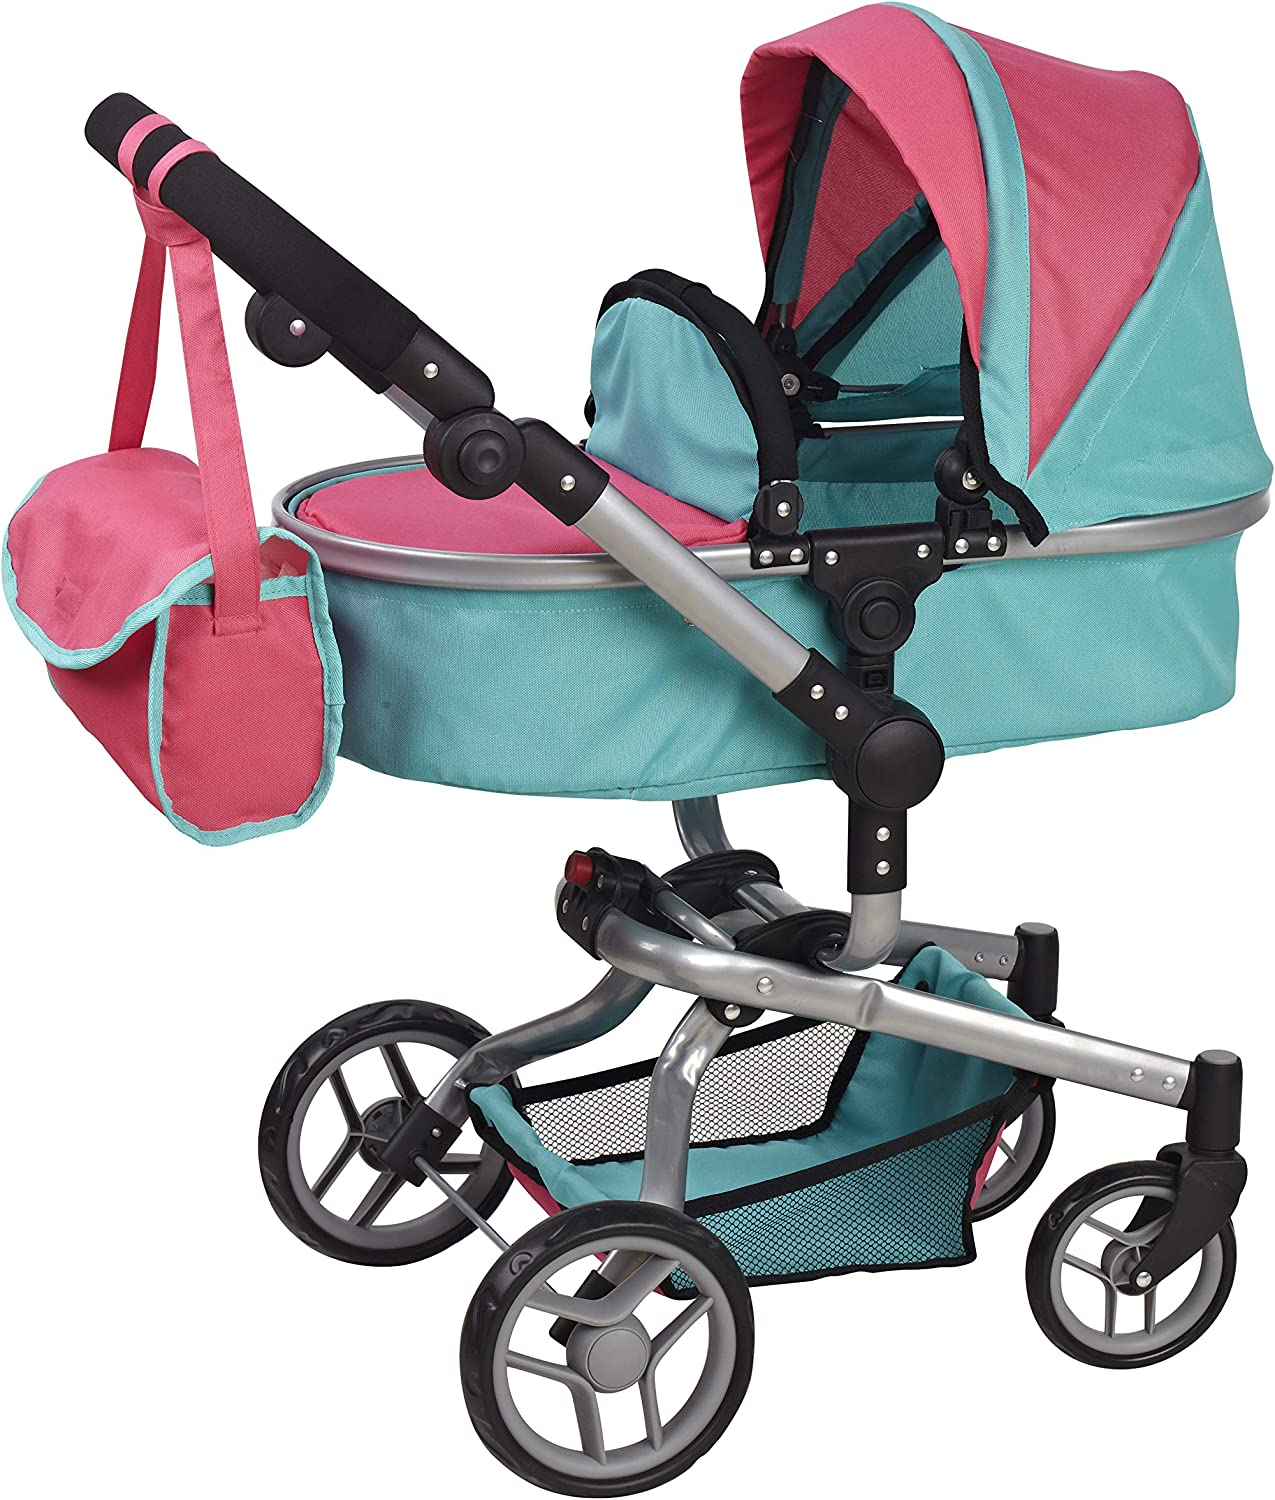 Deluxe 2 in 1 Doll Stroller Extra Tall 32'' High